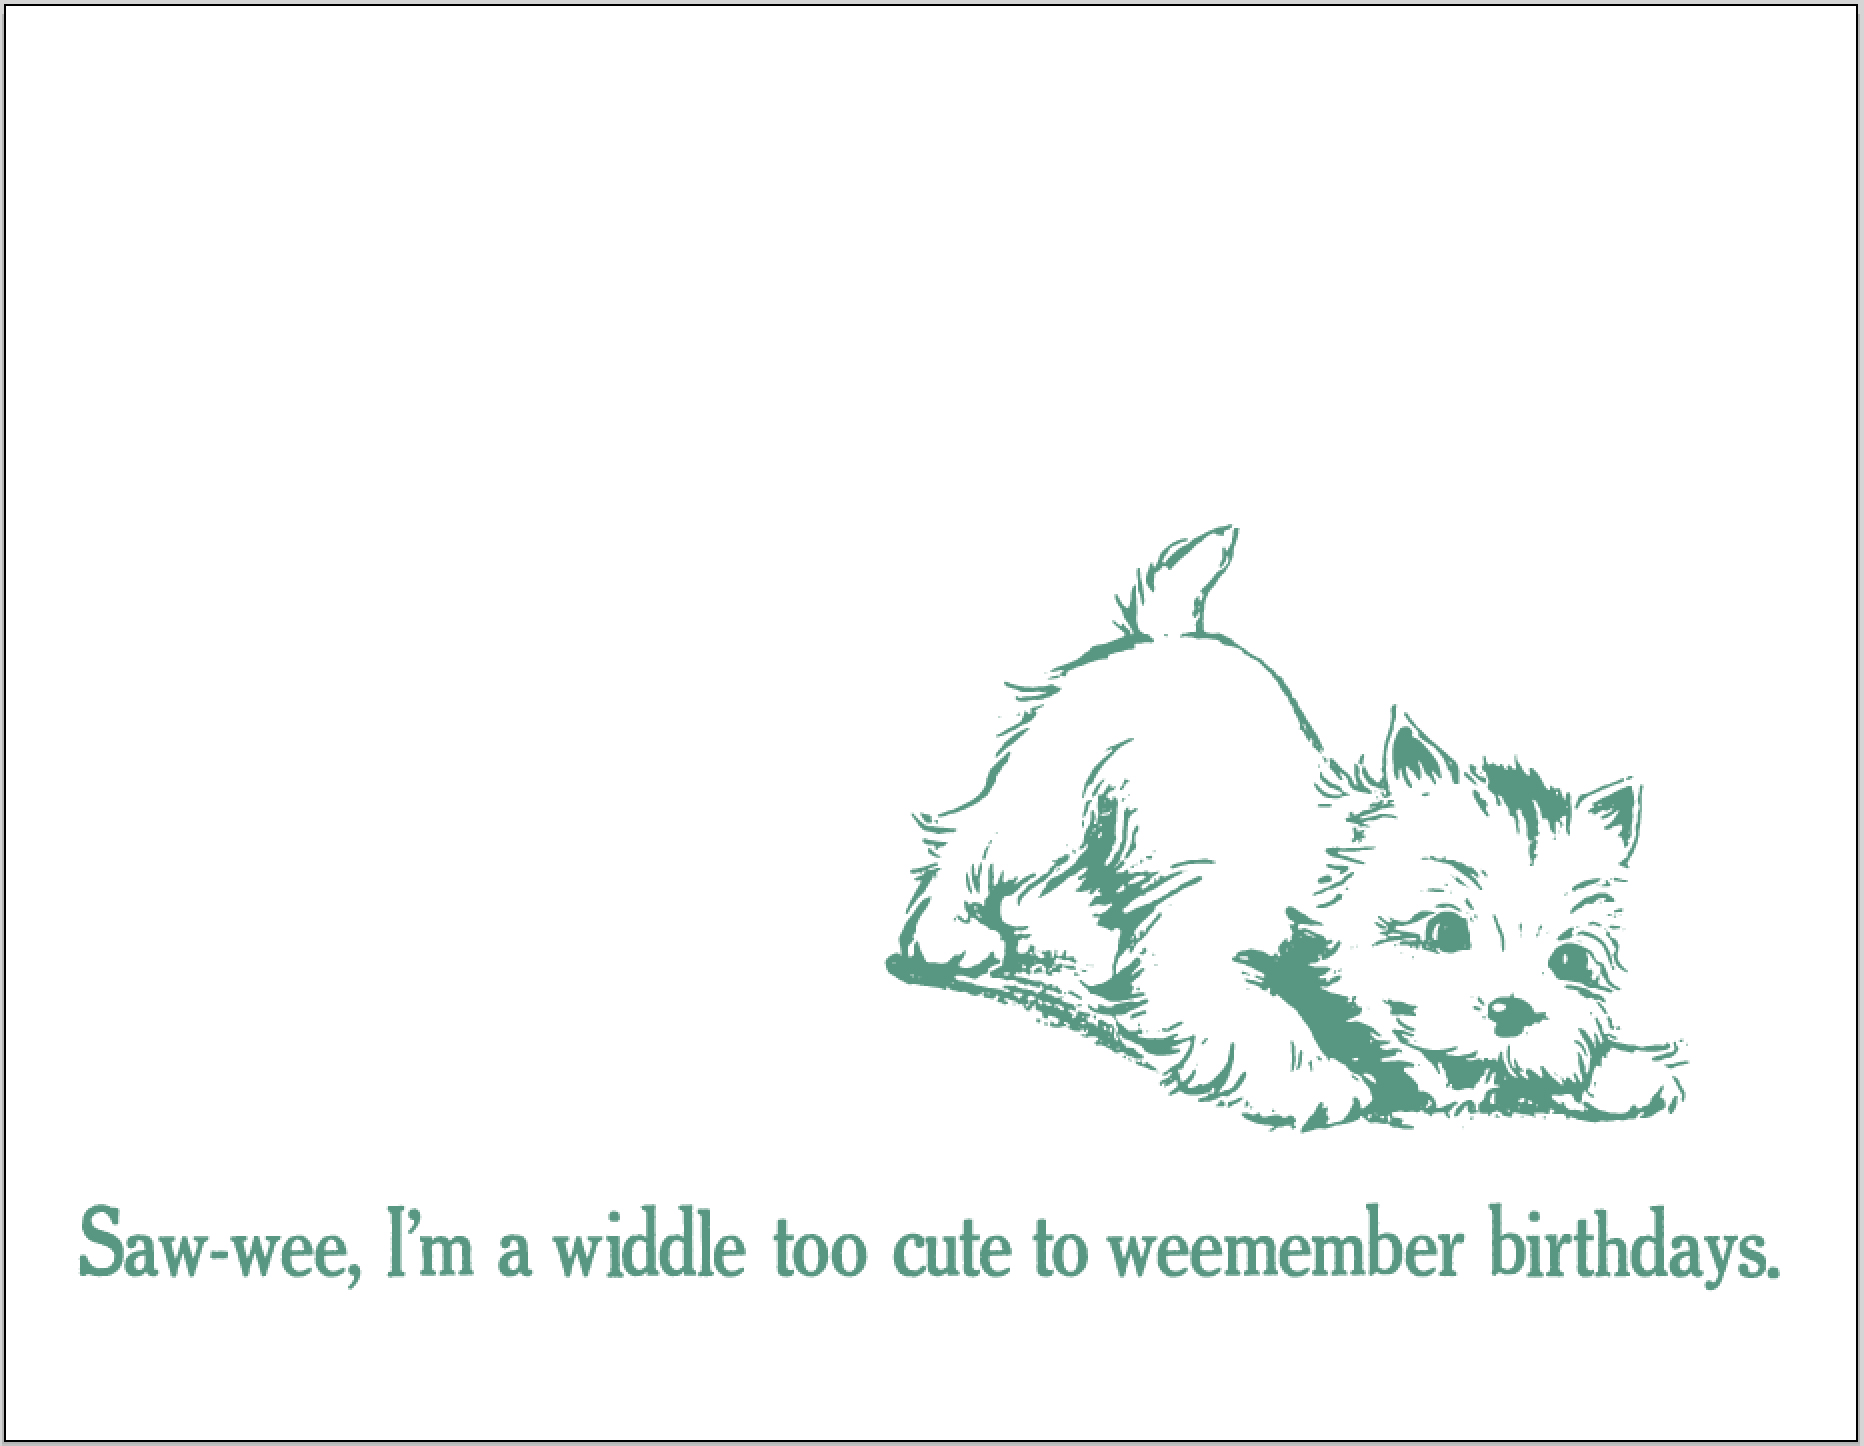 too cute to weemember.comma